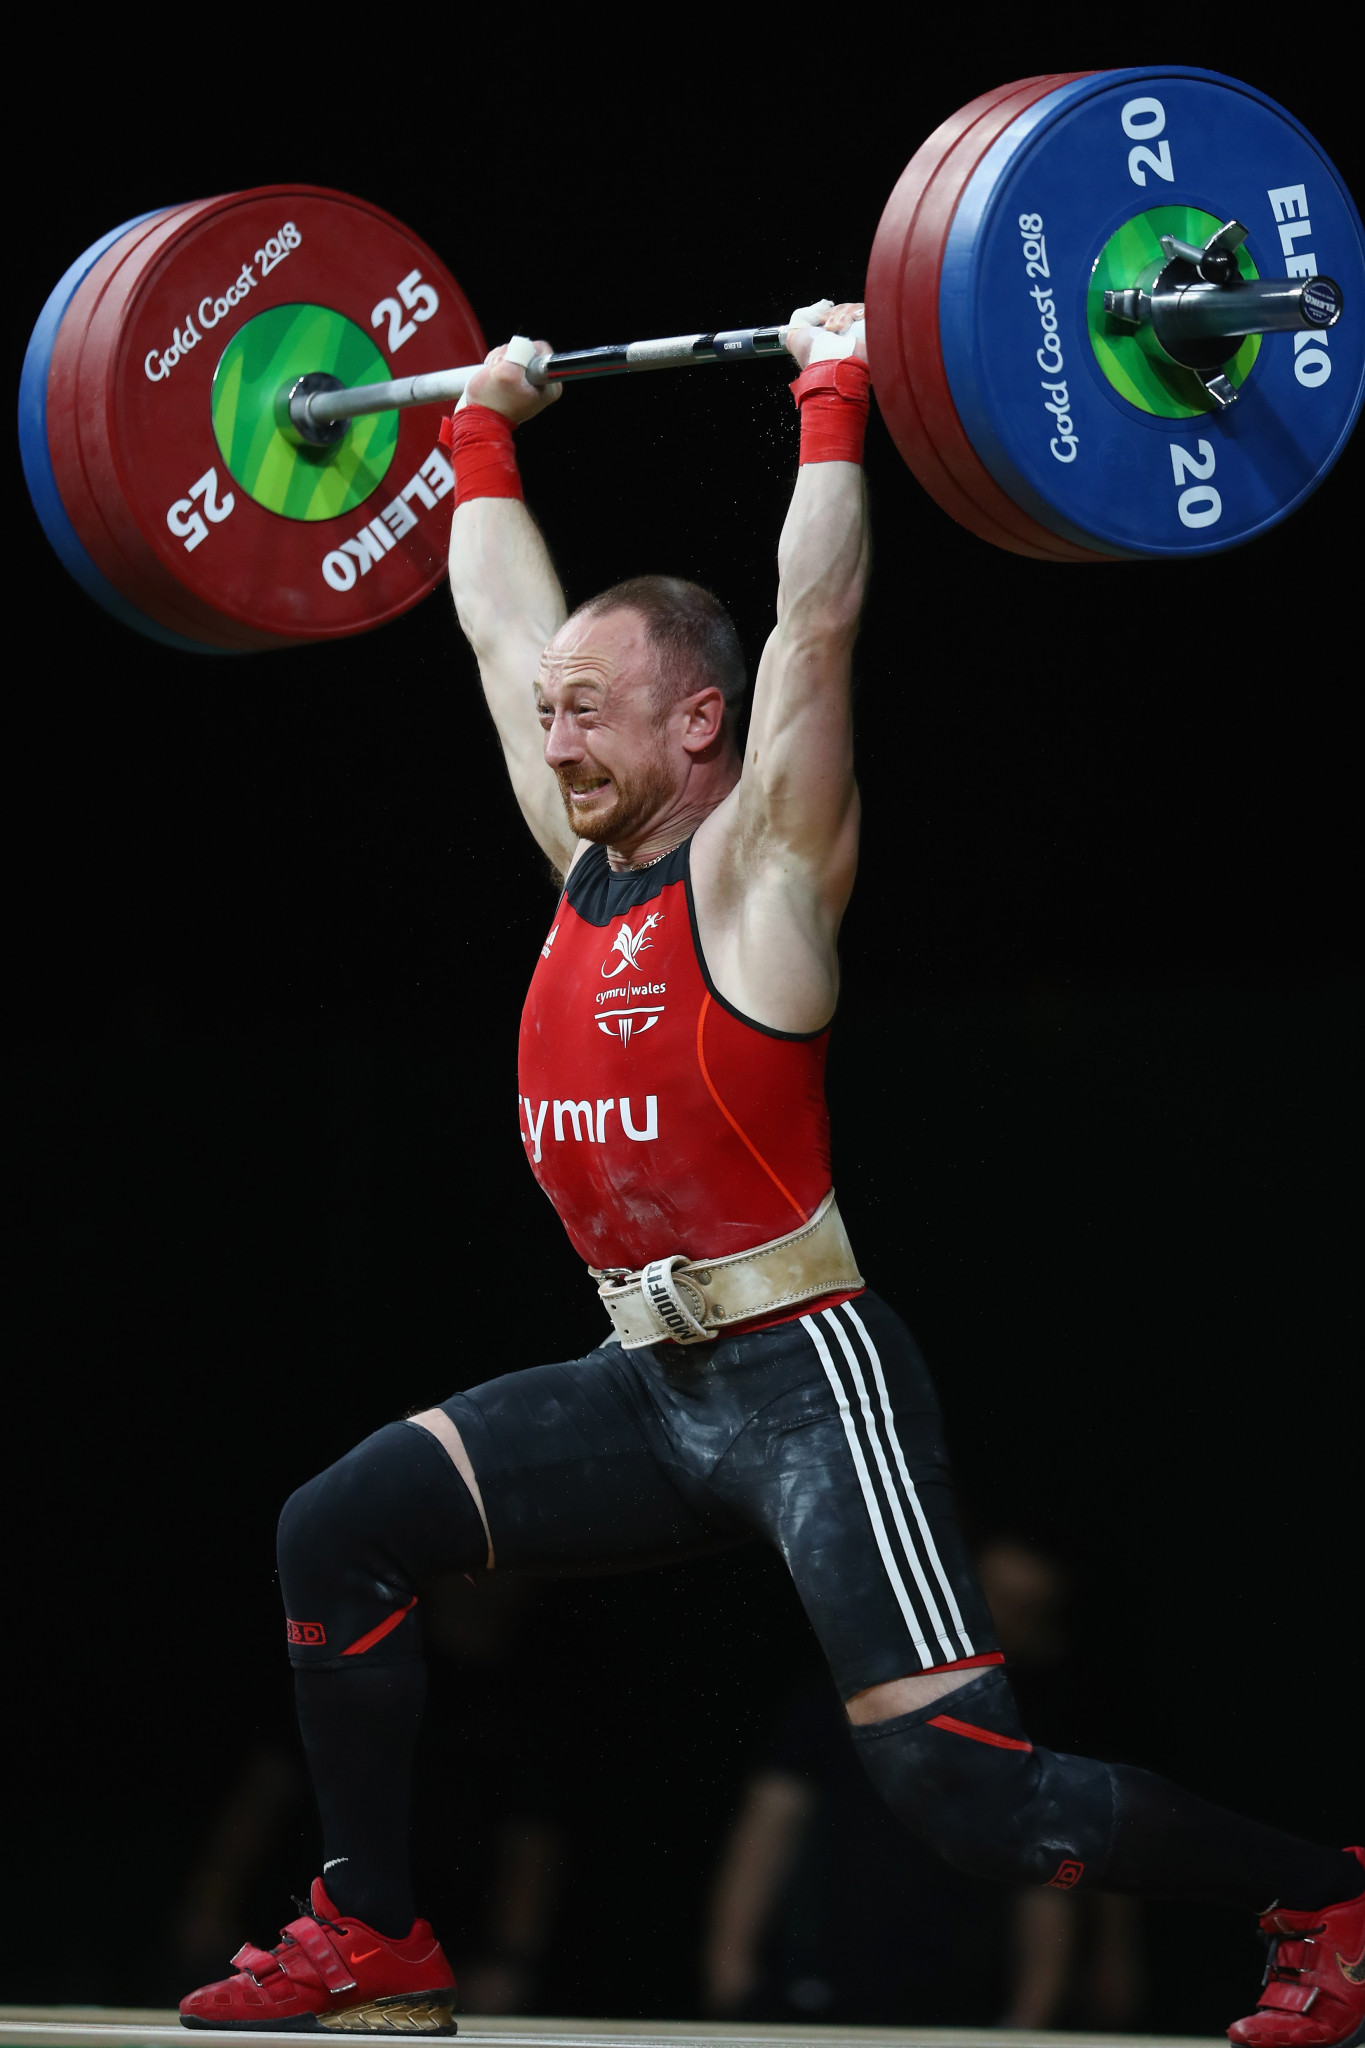 Gareth Evans secured Wales' first gold medal of Gold Coast 2018 with a dramatic victory in the men's 69kg event ©Getty Images